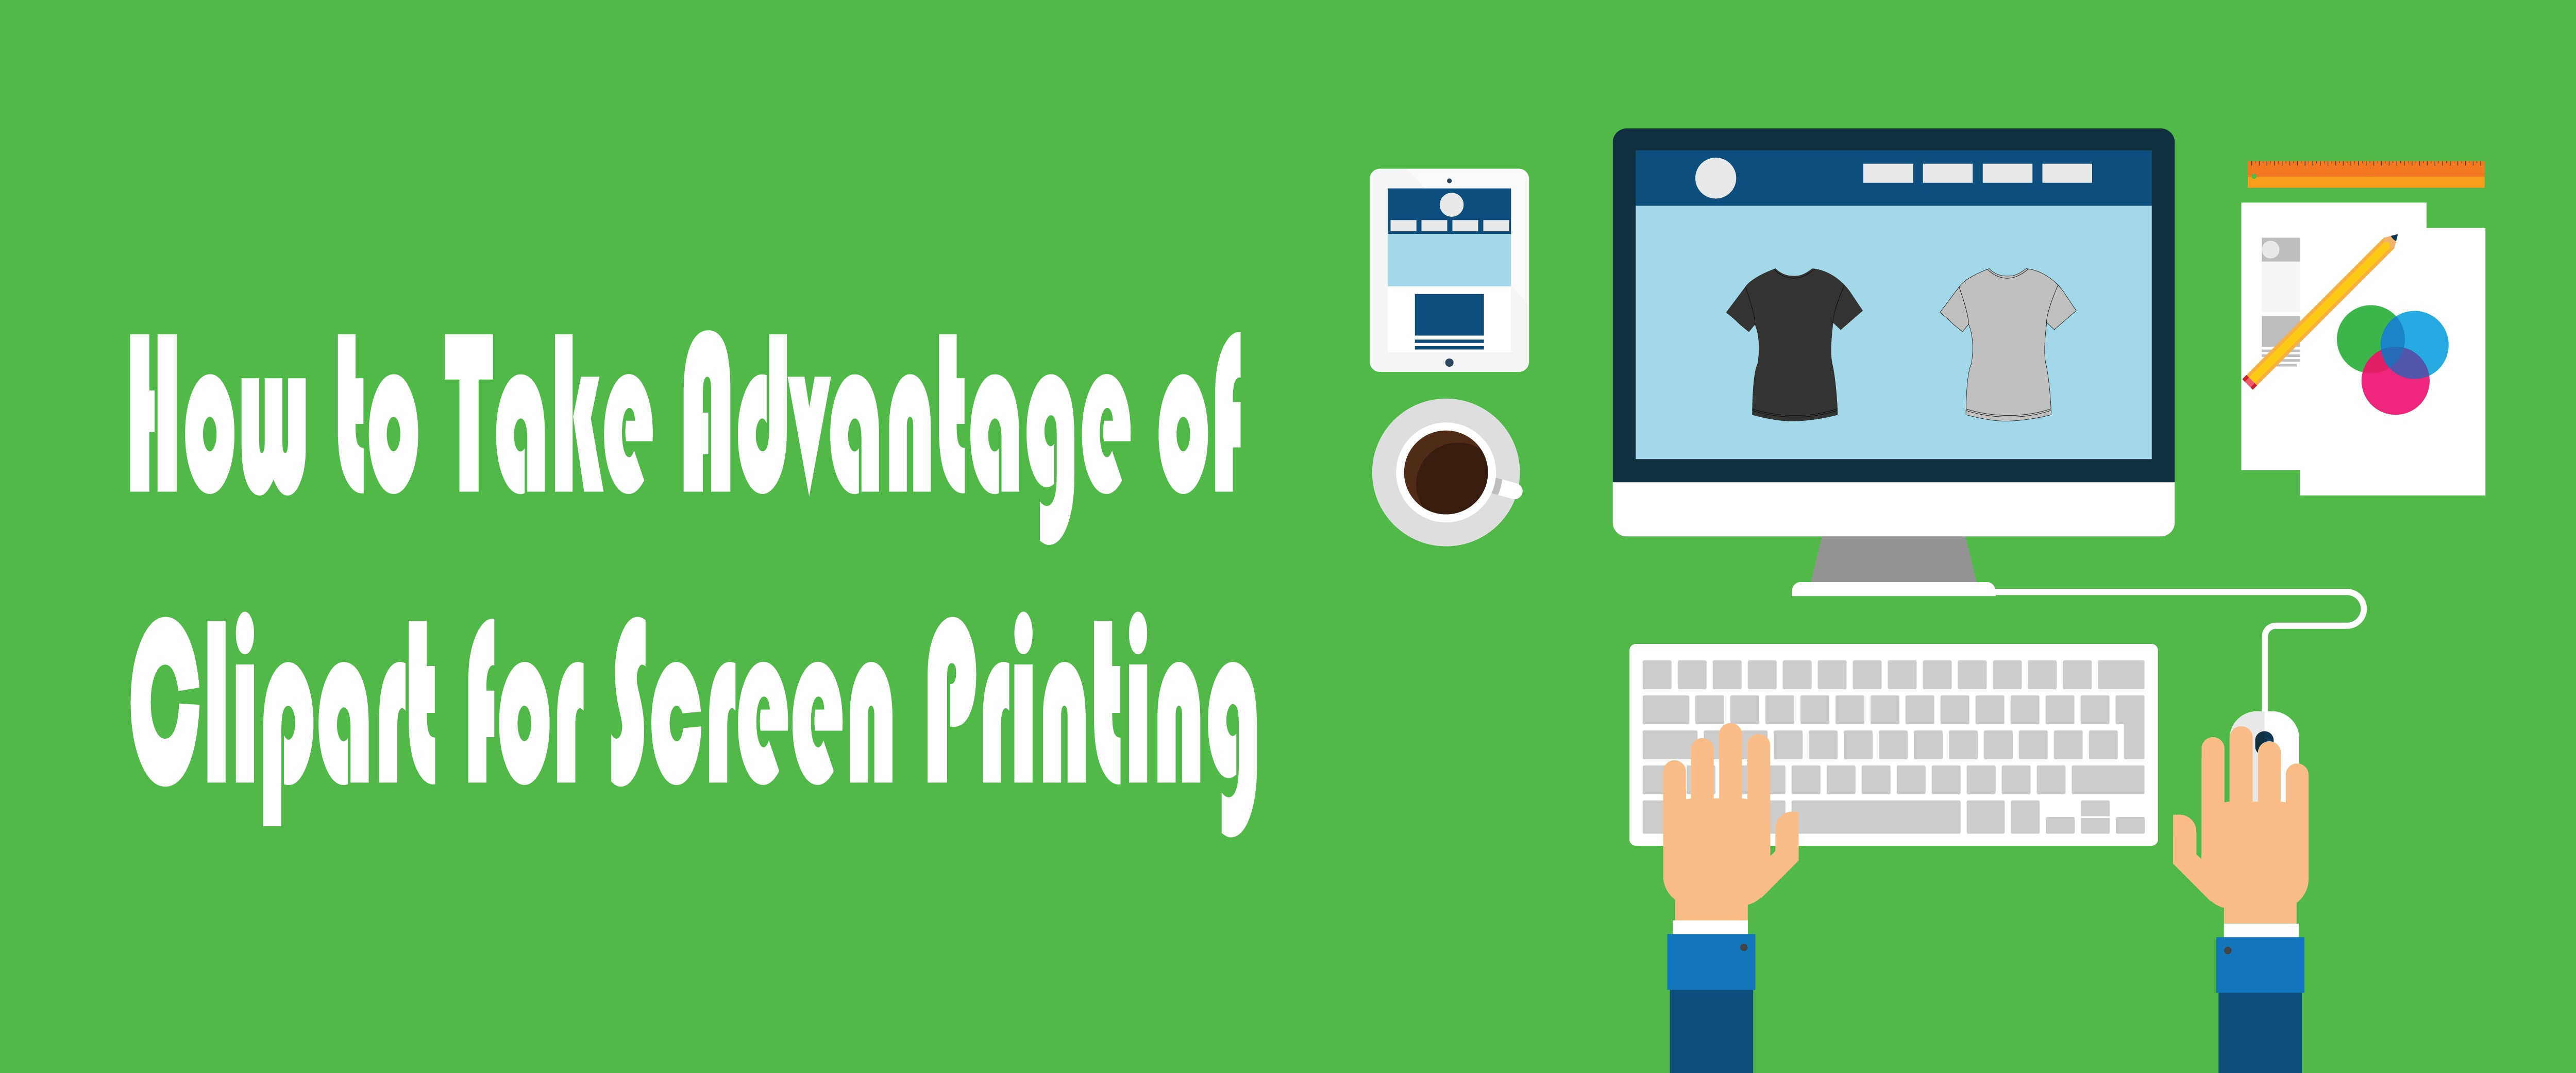 How to Take Advantage of Clipart for Screen Printing.